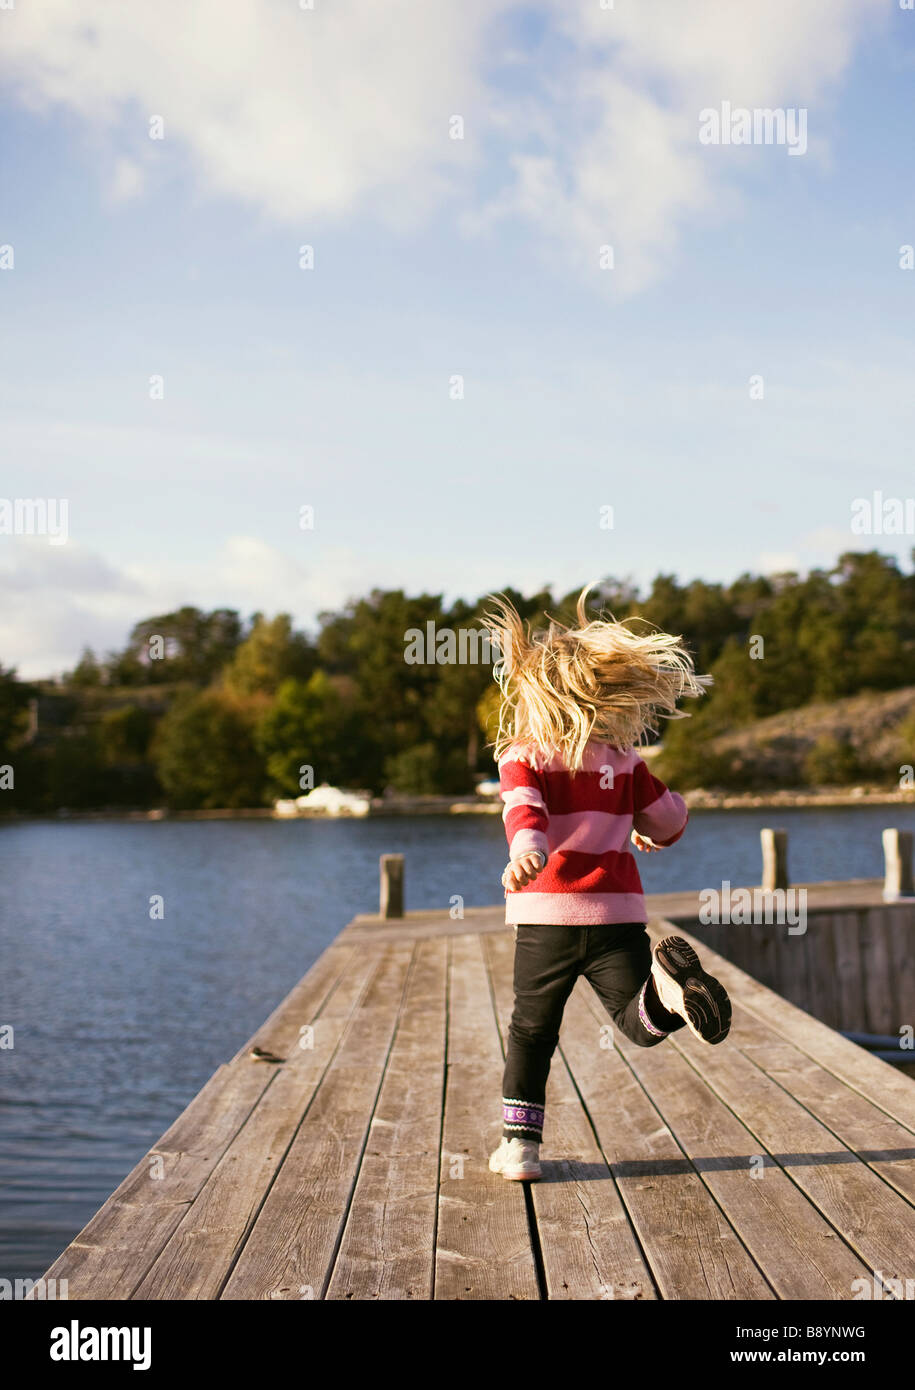 A girl running on a jetty Stockholm archipelago Sweden. - Stock Image